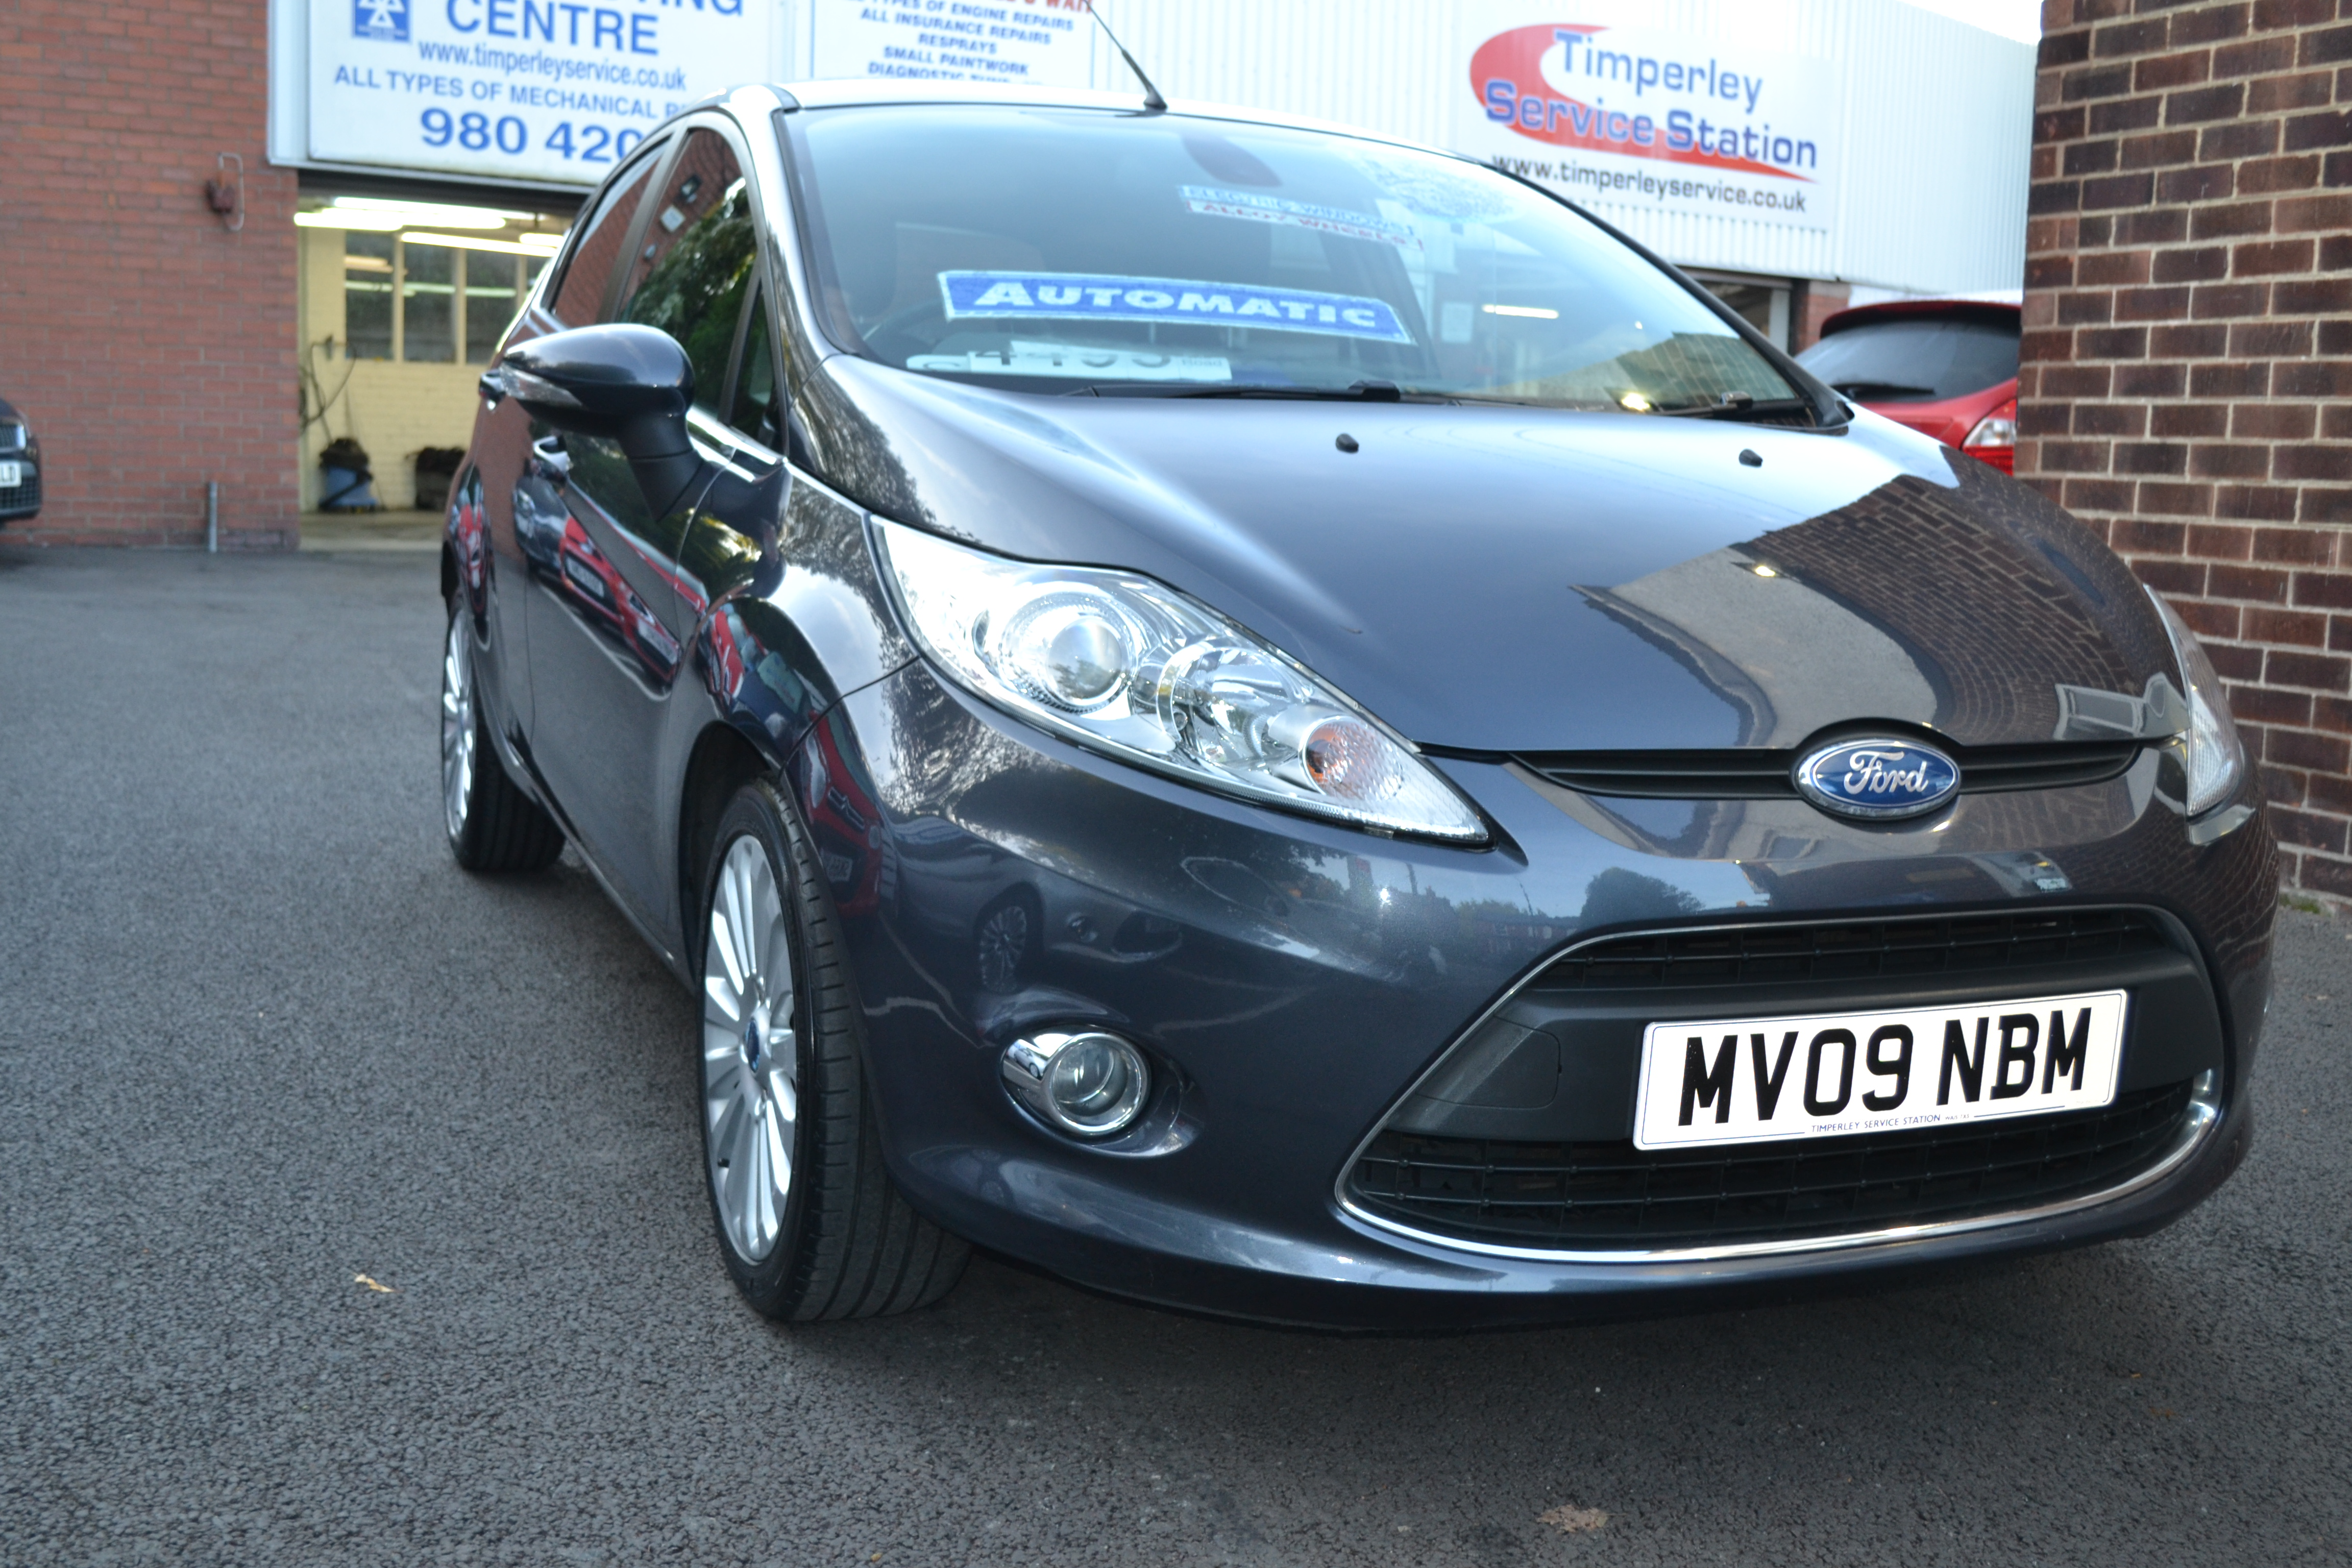 Cars for Sale Near Me with Low Mileage Elegant Cars for Sale at Timperley Service Station Altrincham Cheshire